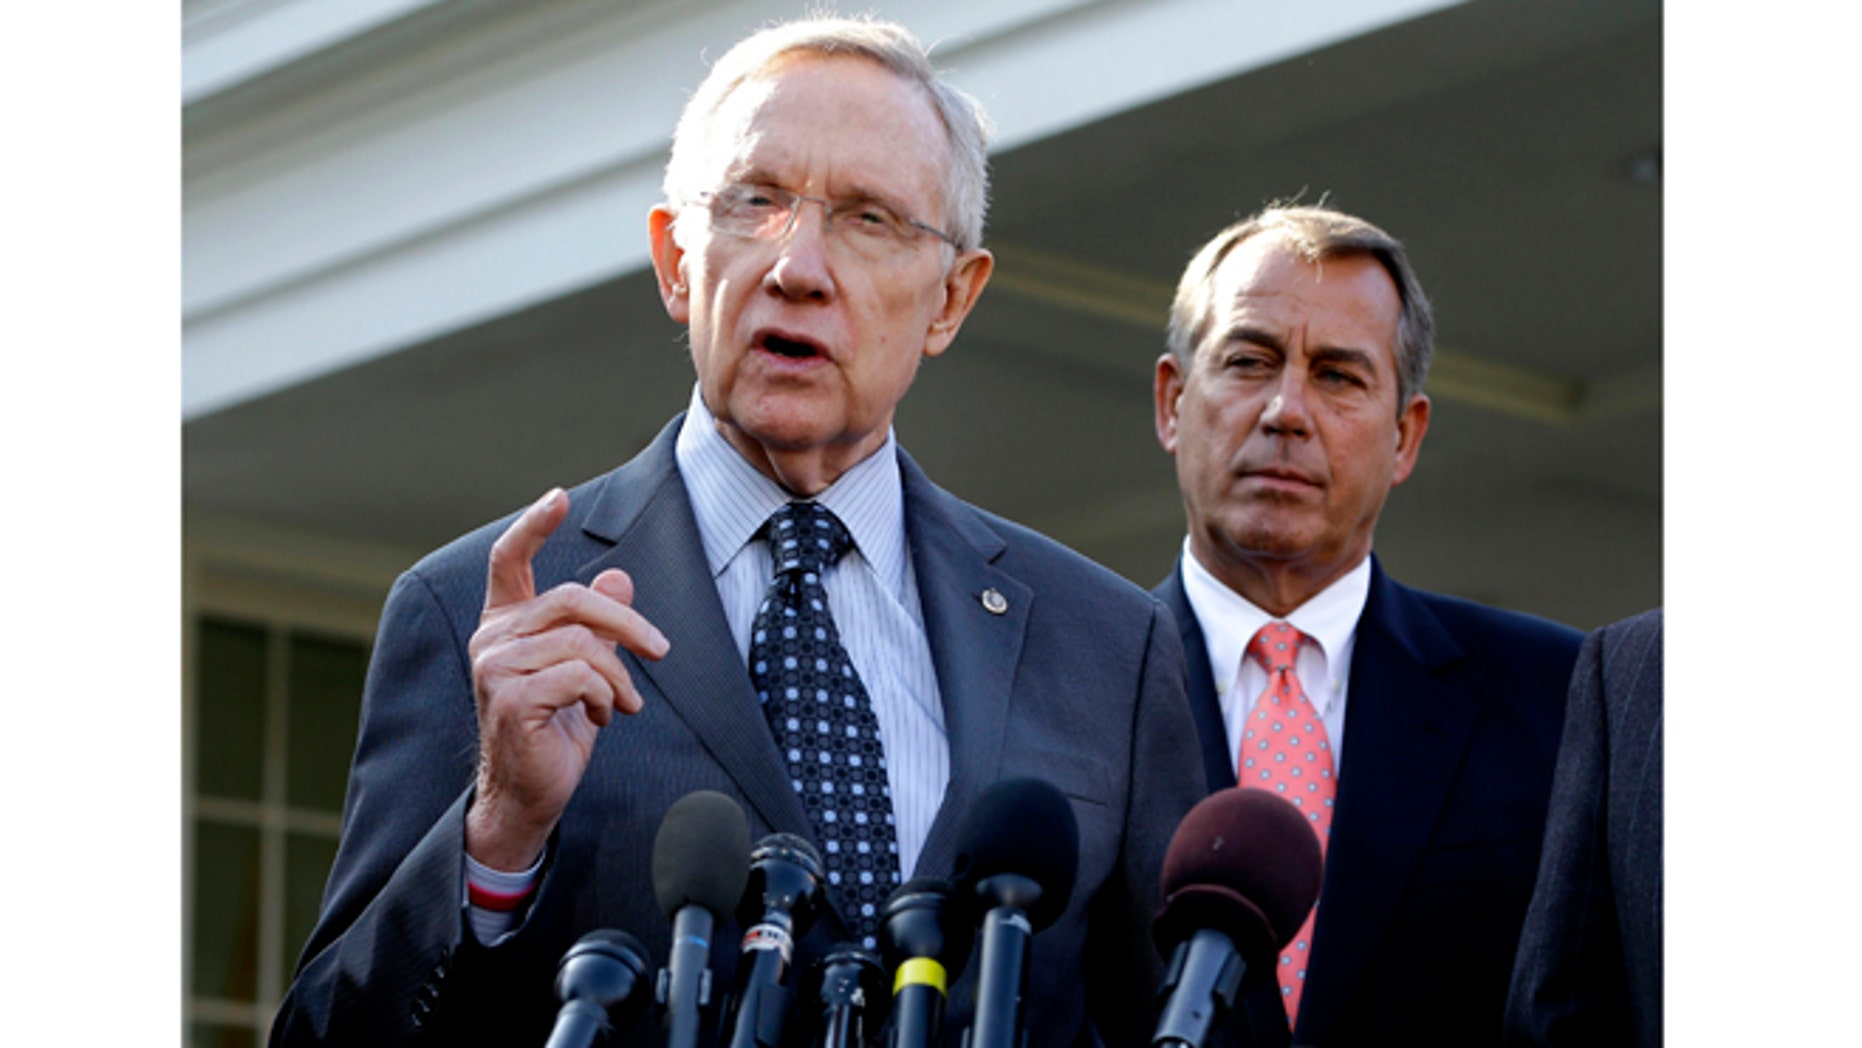 Nov. 16, 2012: Senate Majority Leader Harry Reid of Nev., left, with House Speaker John Boehner of Ohio looking on, speaking to reporters outside the White House in Washington following a meeting with President Barack Obama to discuss the economy and the deficit.